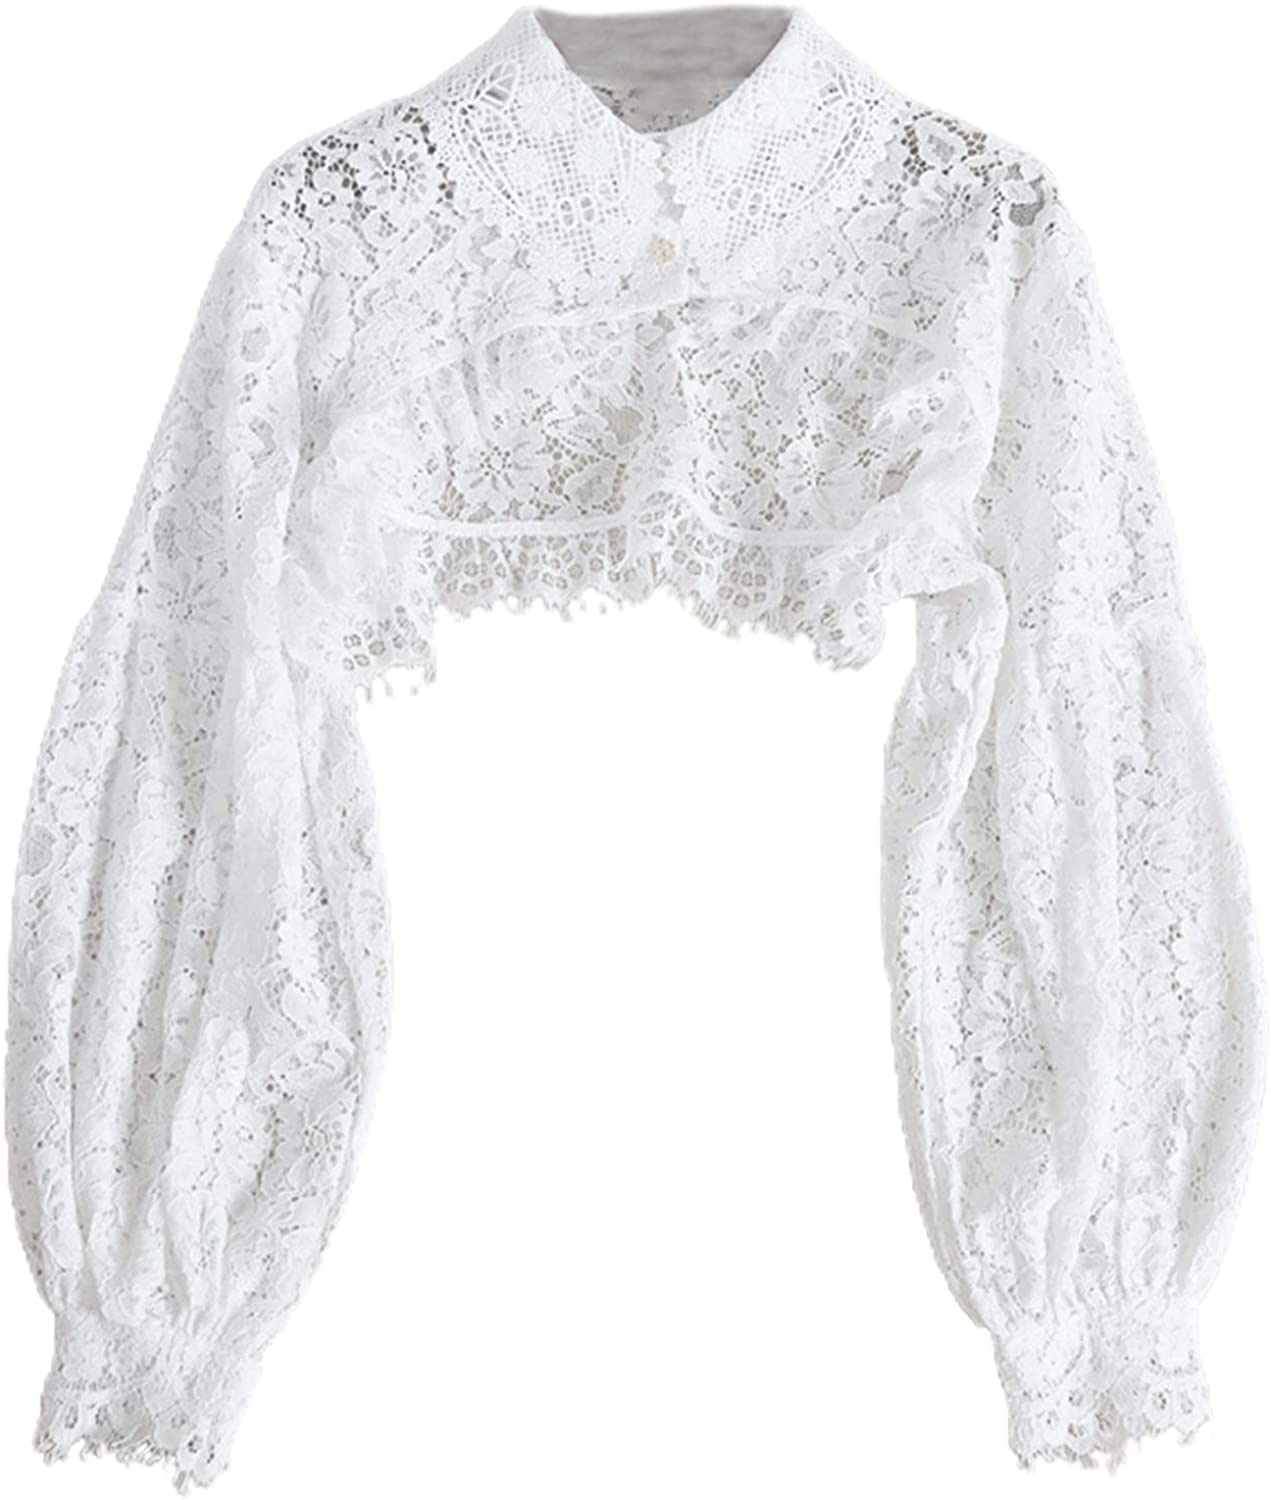 YOUSIKE Detacahble Blouse, Women Puff Long Sleeve Lapel Half Top Blouse Hollow Out Eyelash Floral Lace Detachable False Fake Collar Dickey Sweater Decorative Clothing Necklace